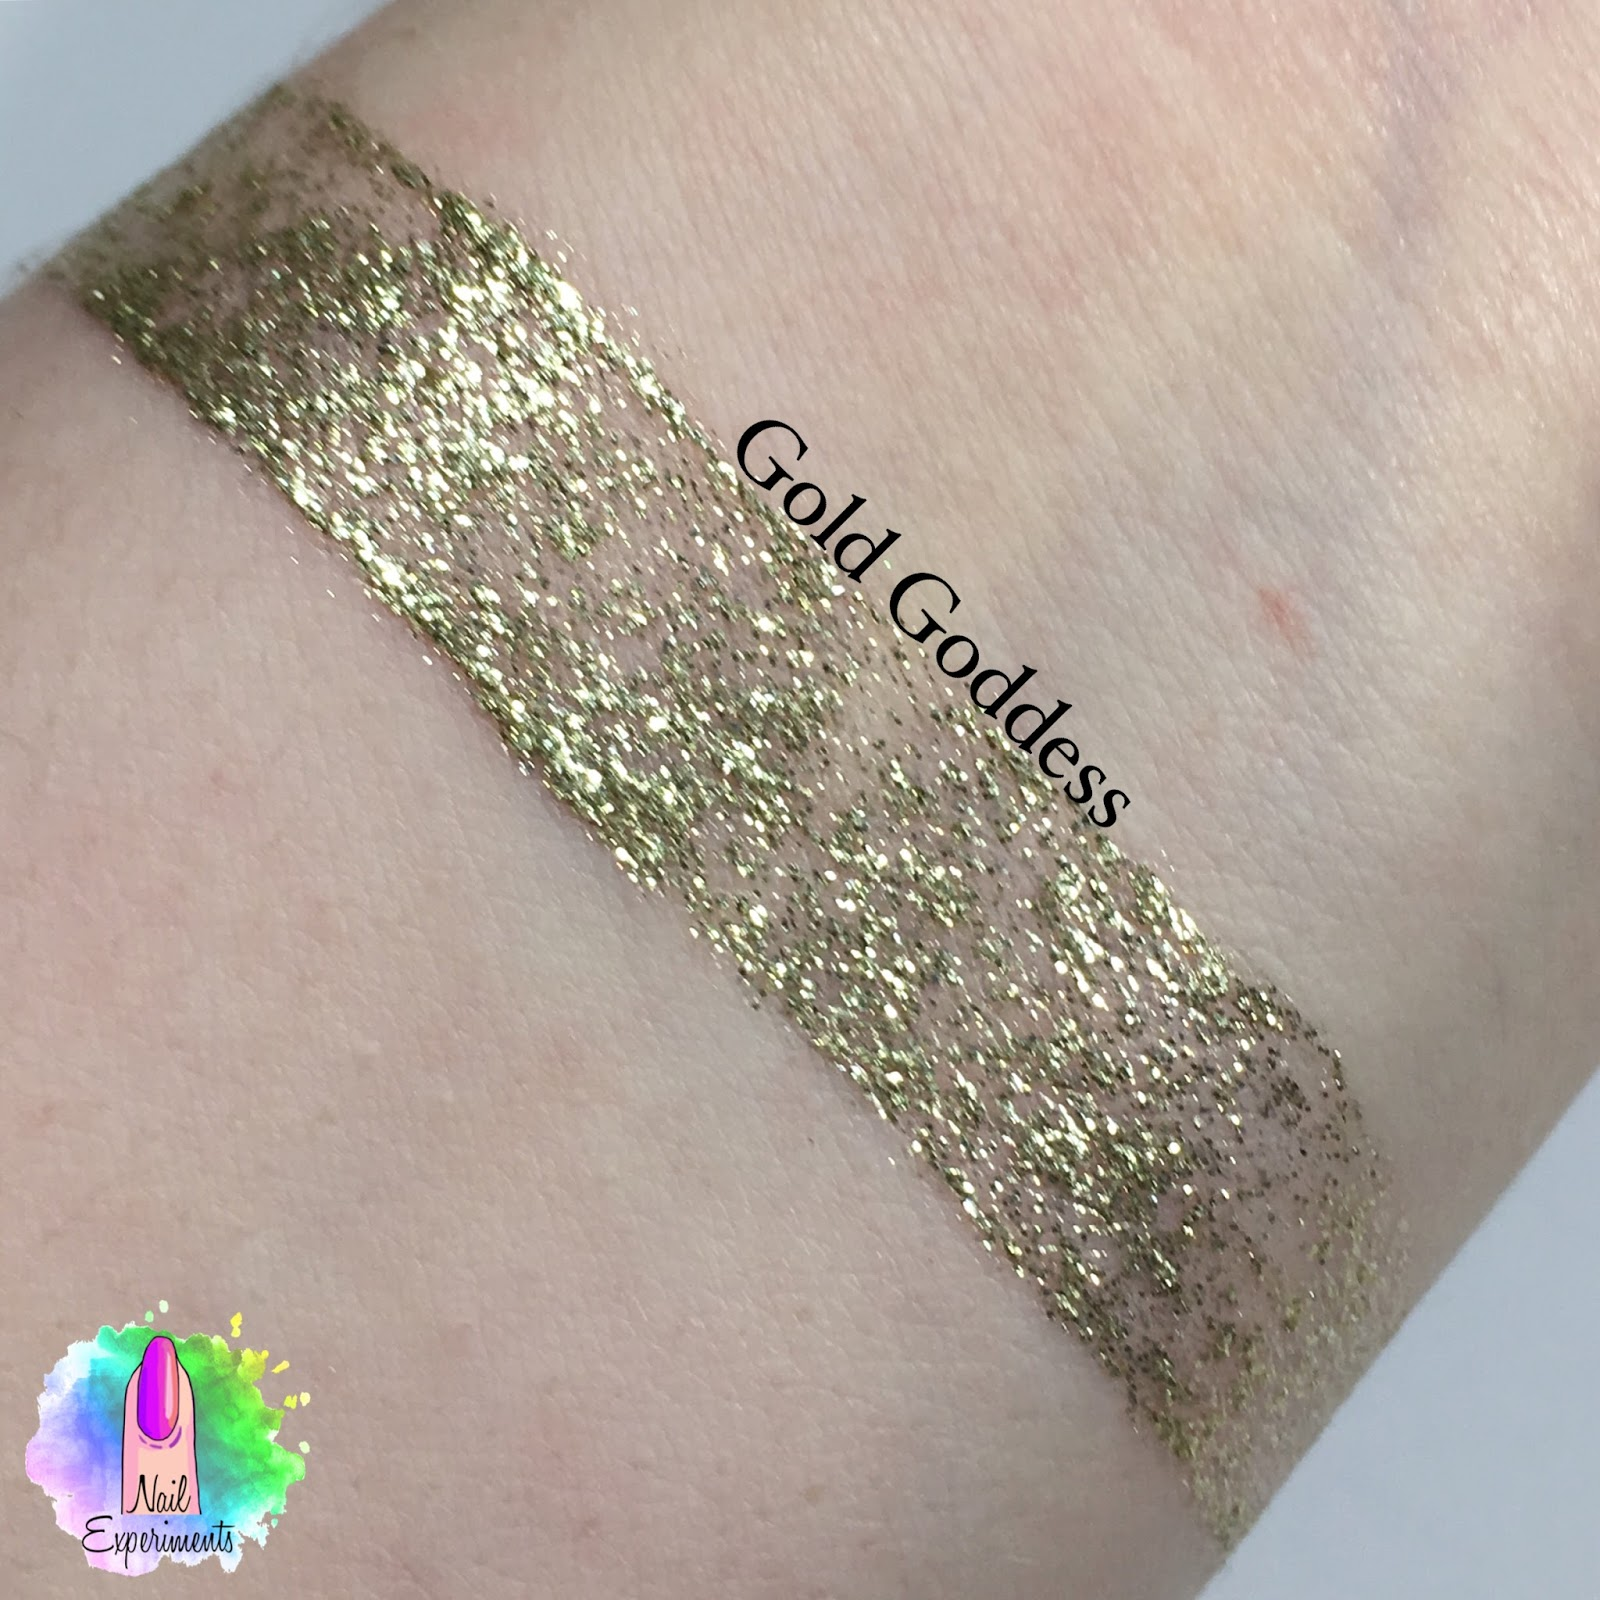 Stila magnificent metals glitter and glow liquid eye shadow swatch in golden goddess